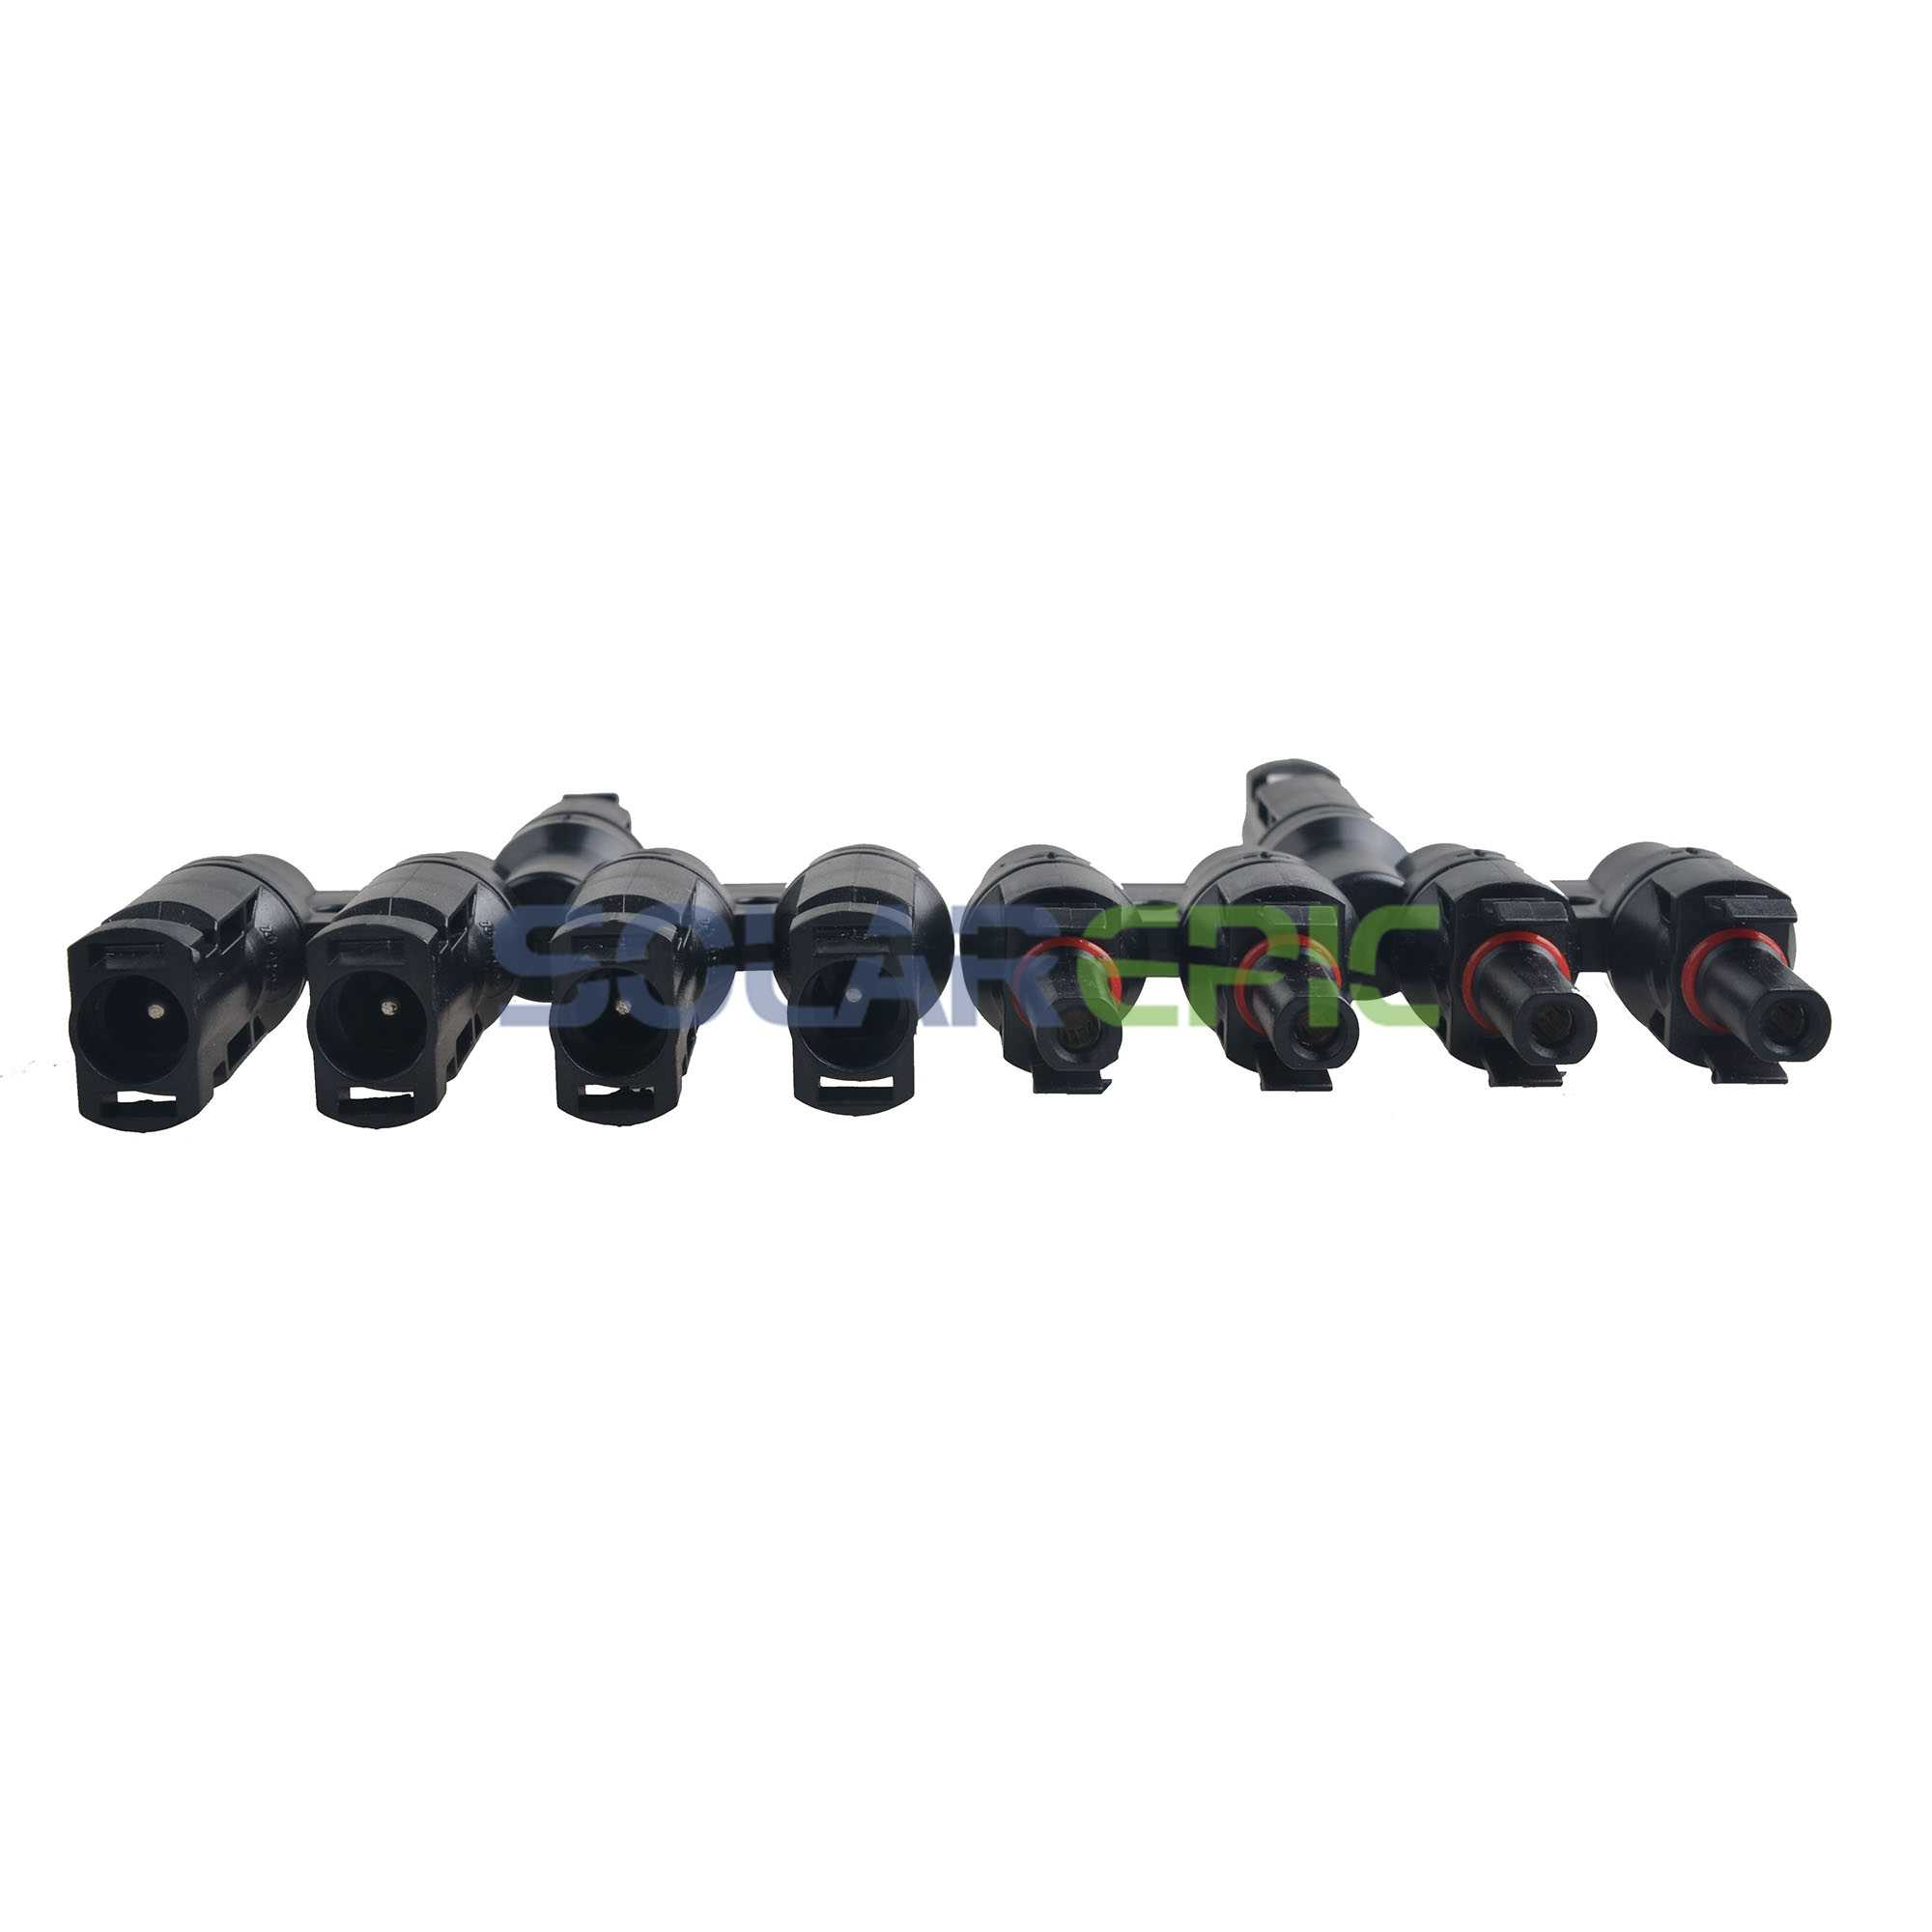 MC4 T Type 4 Branch Solar Panel Cable AC/DC Branch Connectors MFFFF FMMMM IP65 Connector Waterproof MC4 Solar Panel Connector